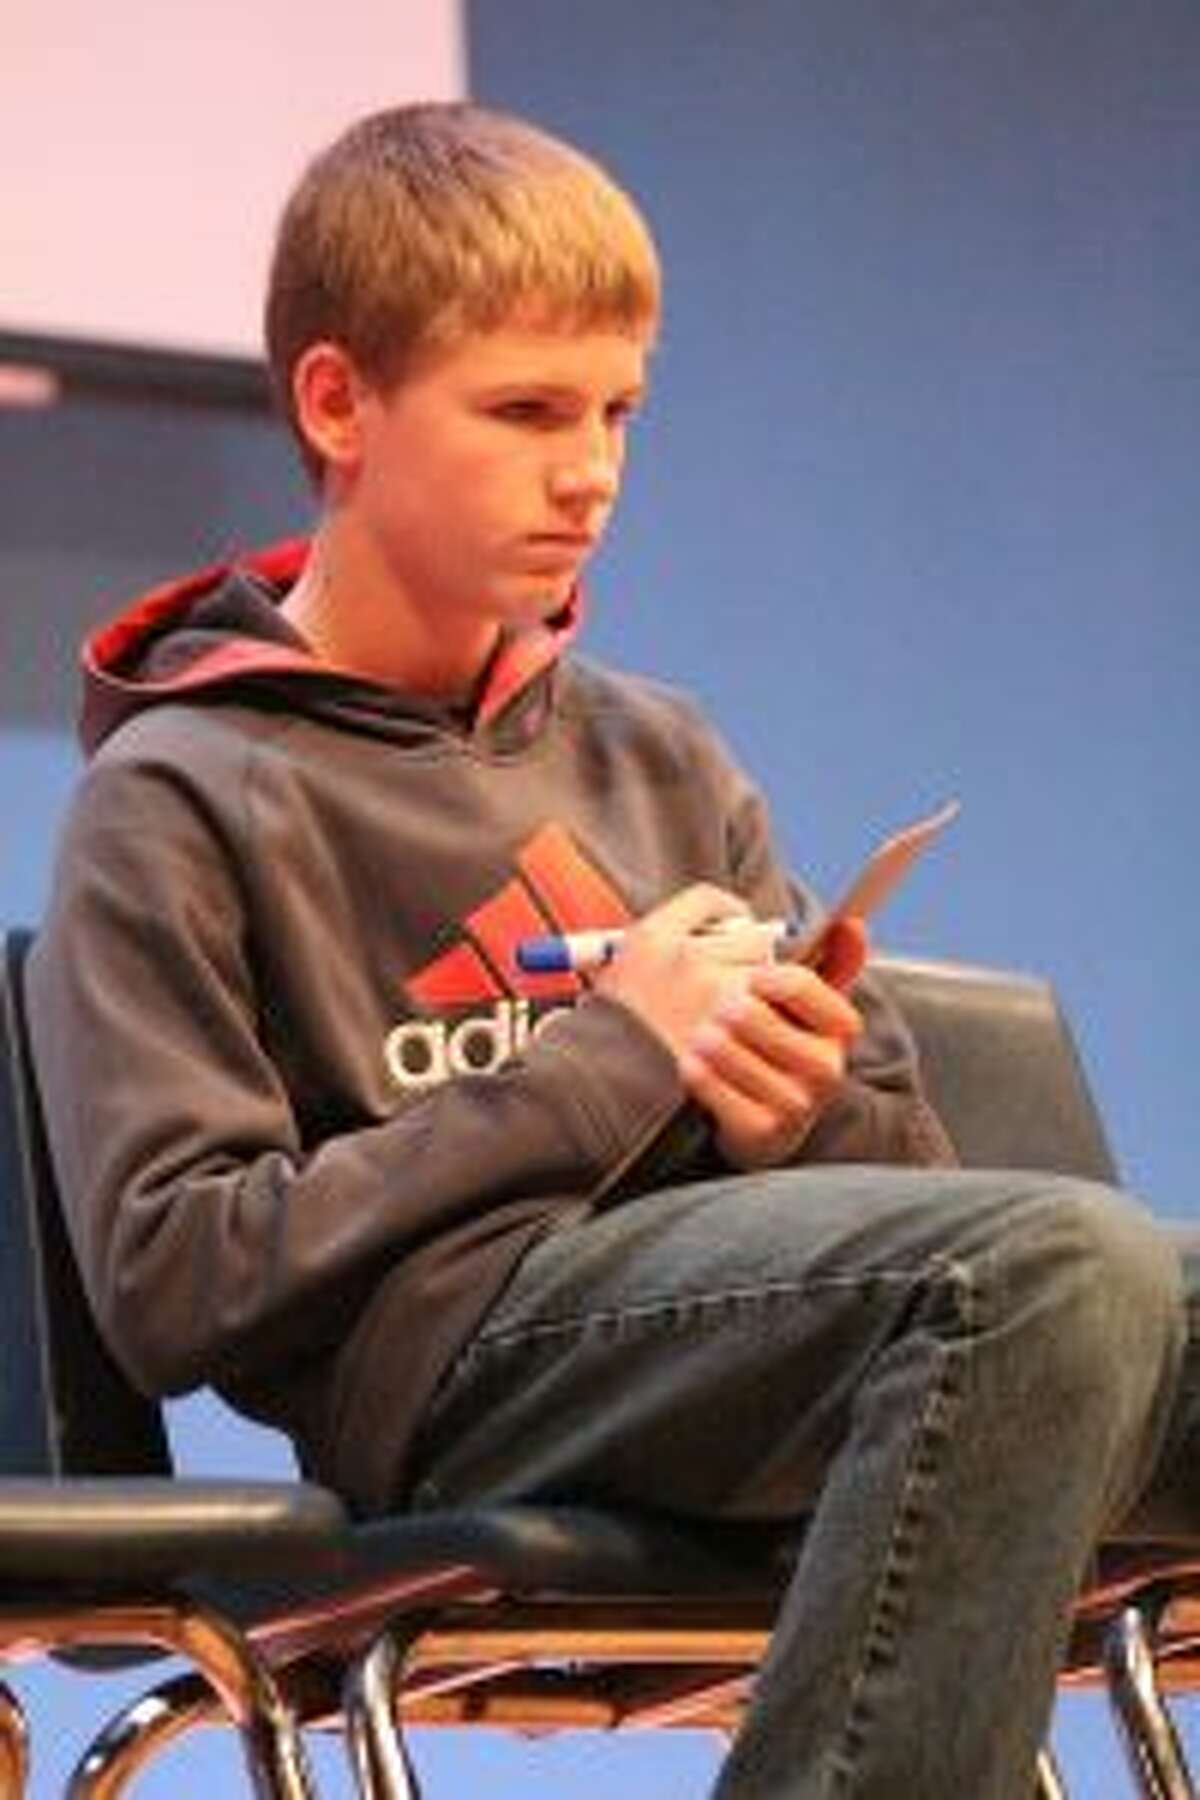 Evart Middle School eighth-grader Danny Witbeck writes his answer during the championship round of the geography bee on Jan. 31. Witbeck won the school's geography bee.